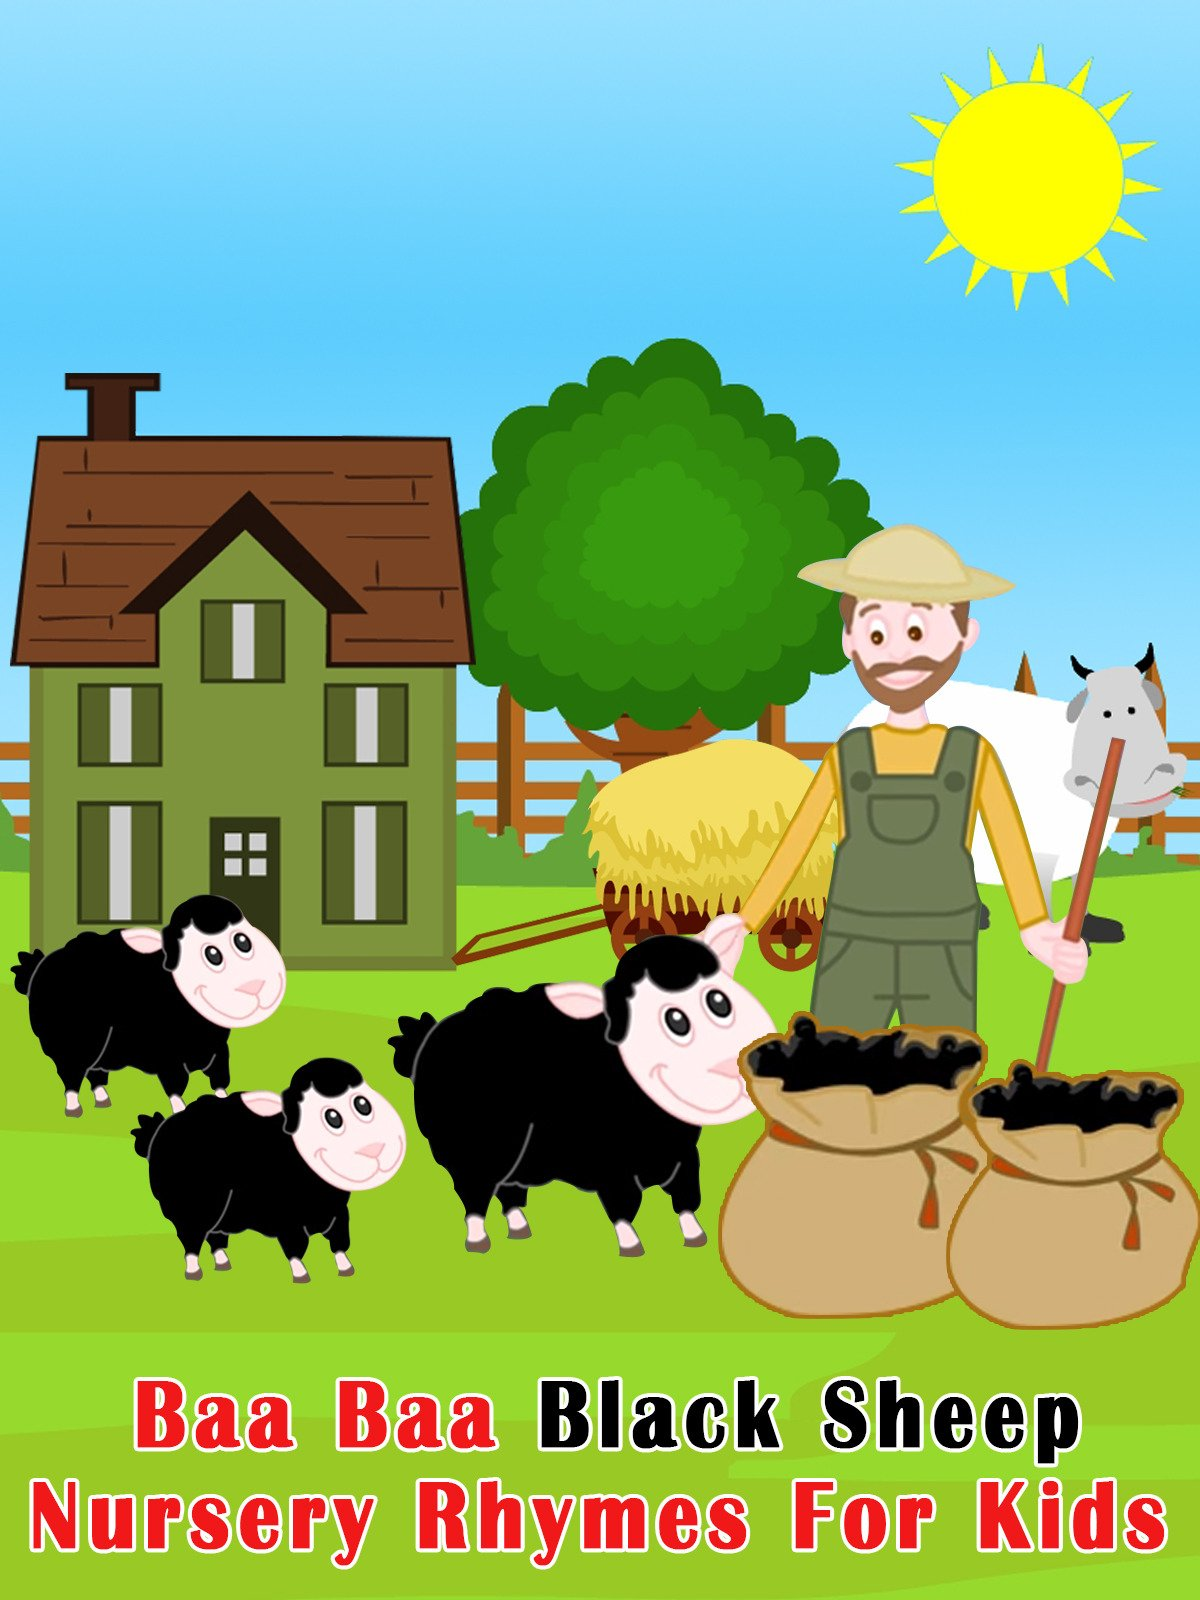 Baa Baa Black Sheep Nursery Rhymes For Kids